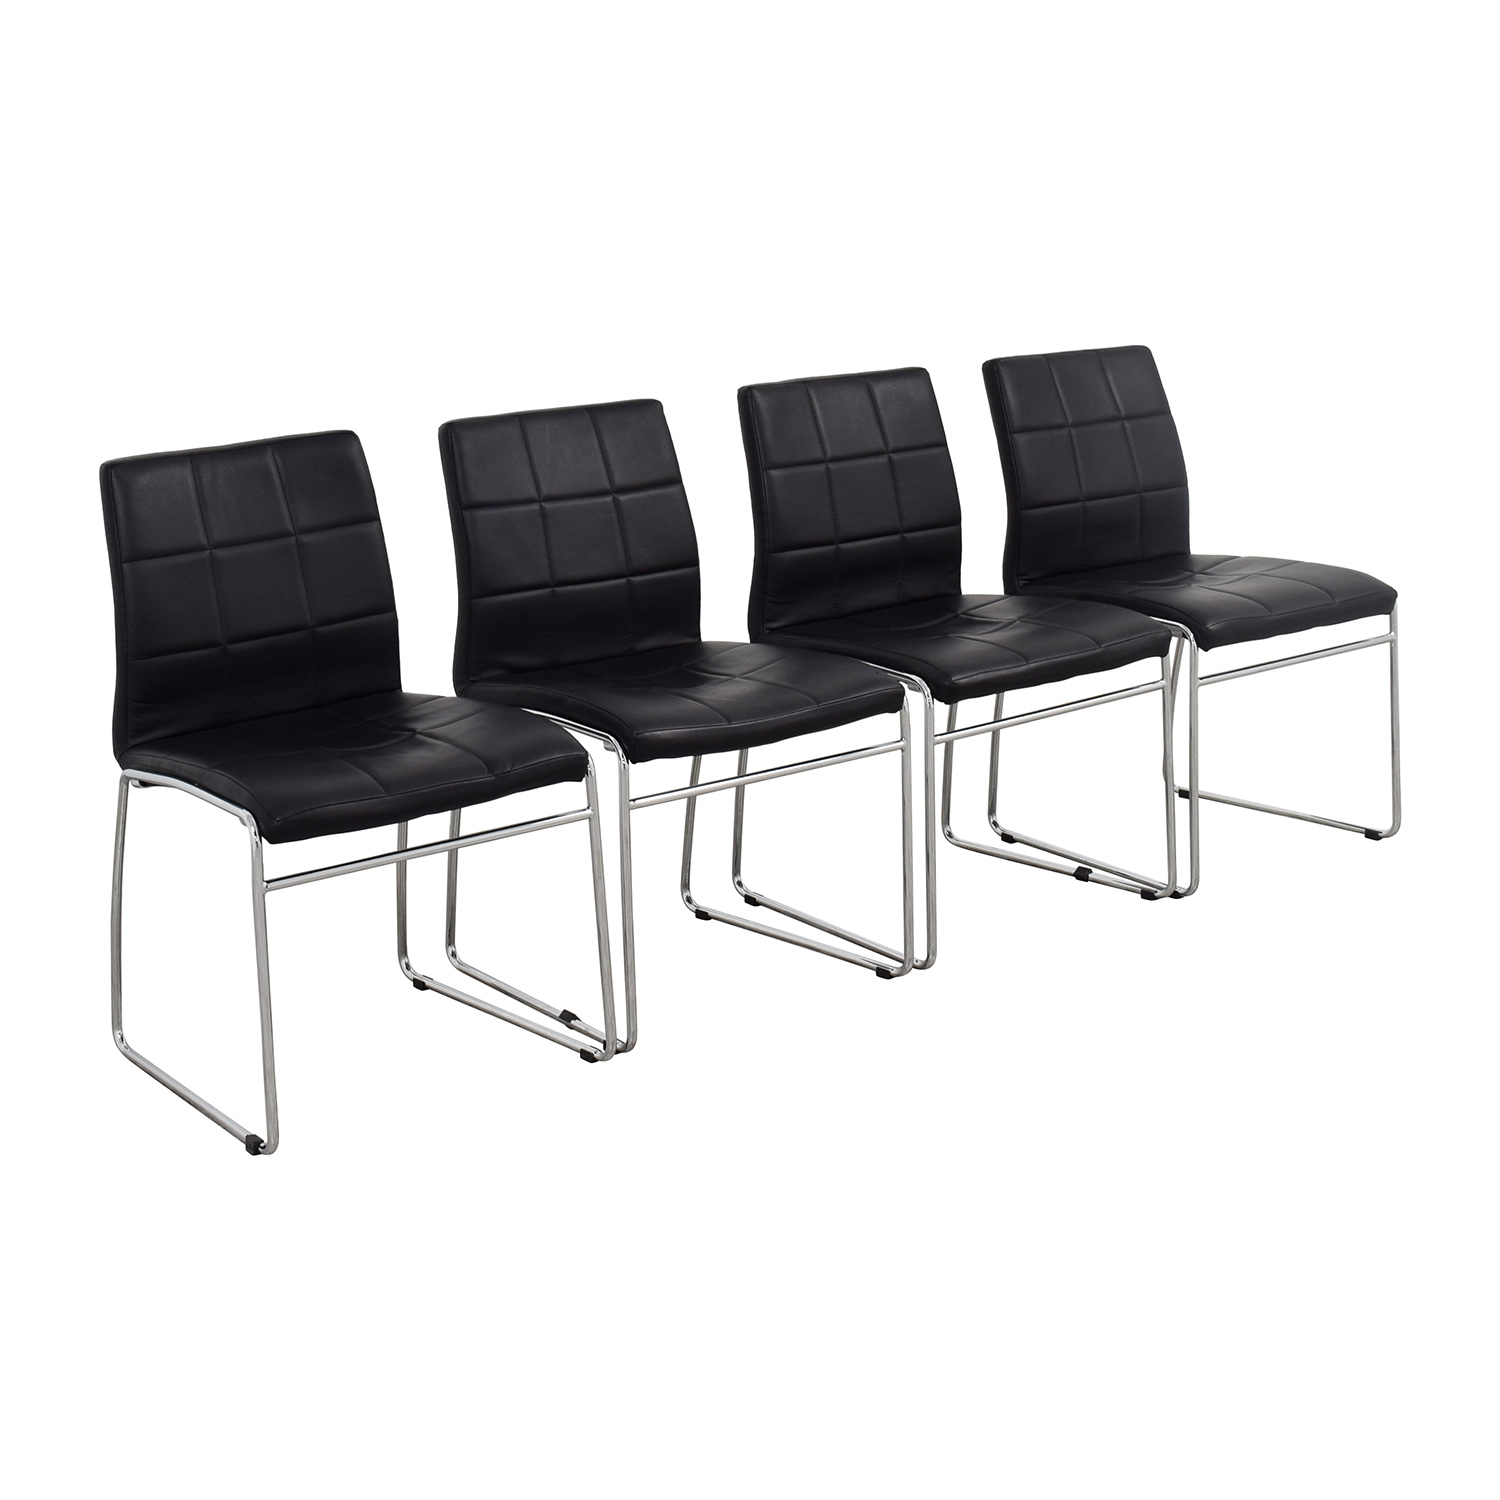 Black Leather Dining Chairs / Chairs